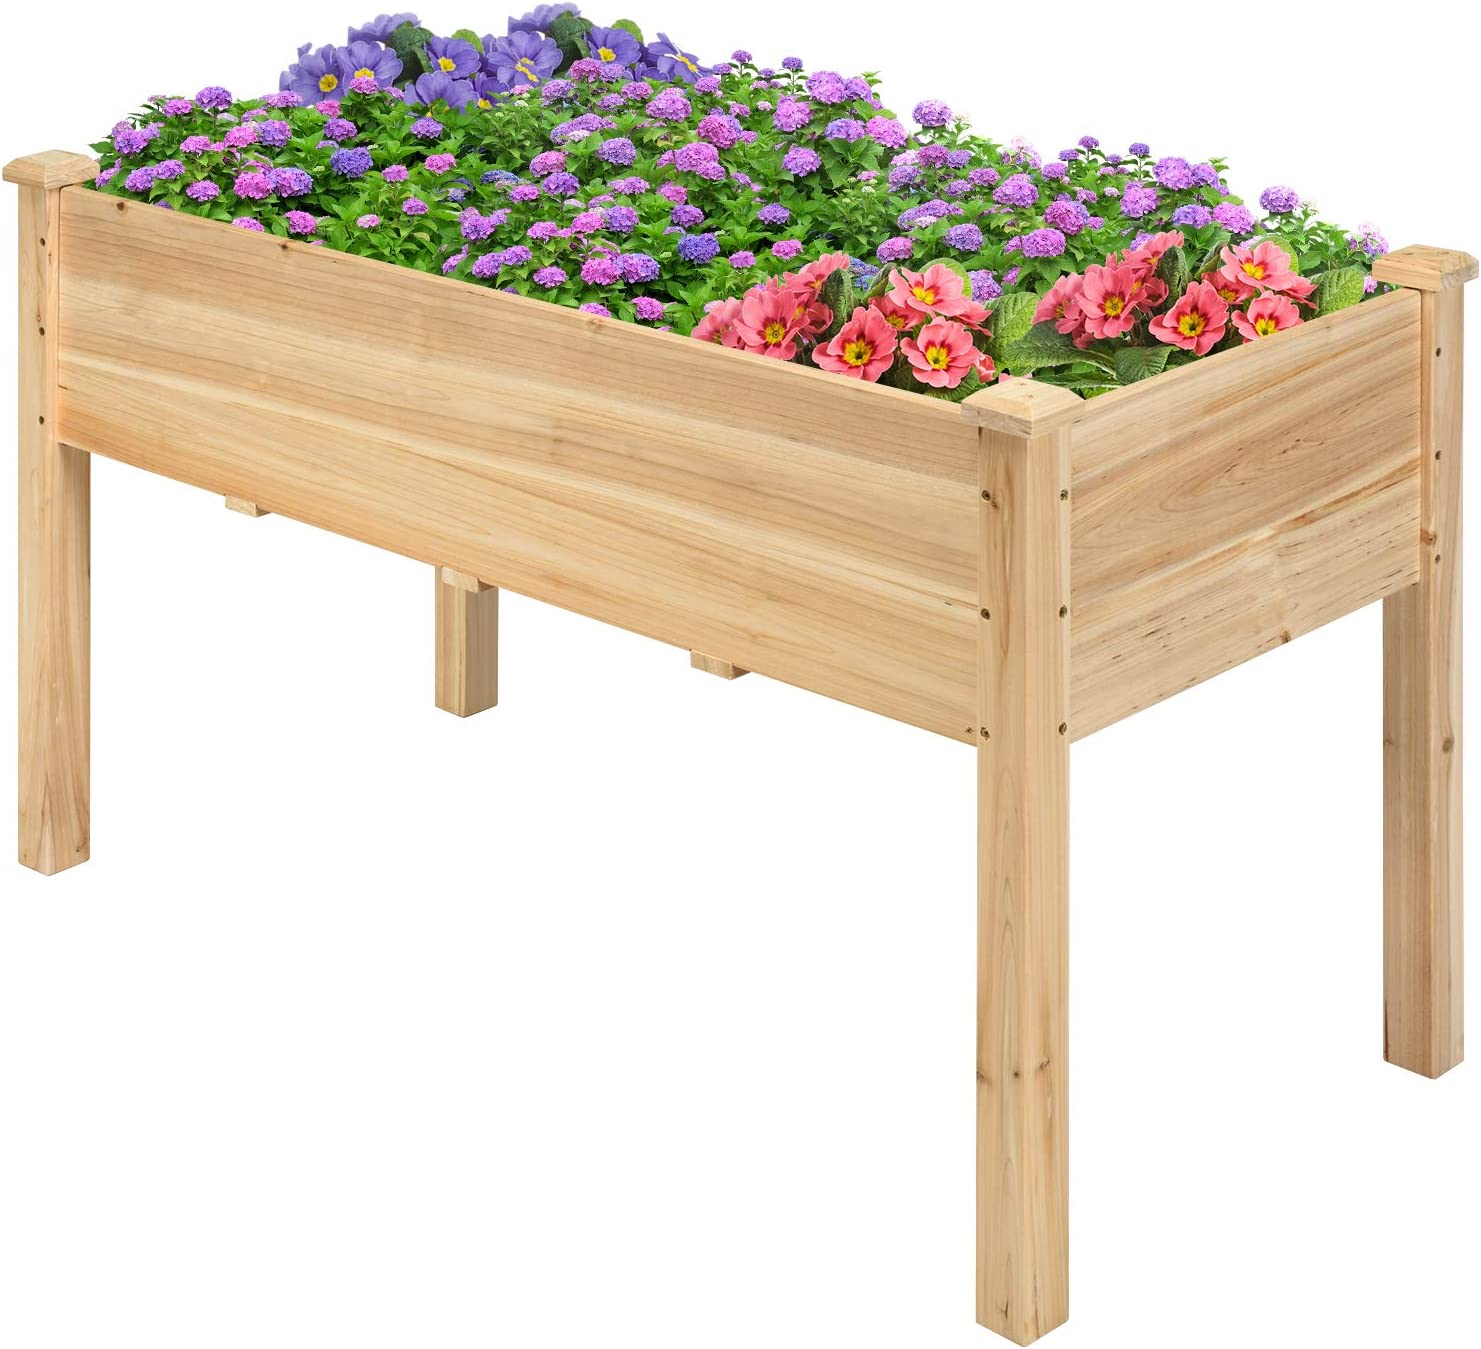 """Safstar Raised Garden Bed, Elevated Wooden Planter Box, 49""""L x 23""""W x 30""""H, Outdoor Gardening Planting Bed for Vegetables, Flowers & Herbs Grow, Great for Backyard, Patio, Lawn"""